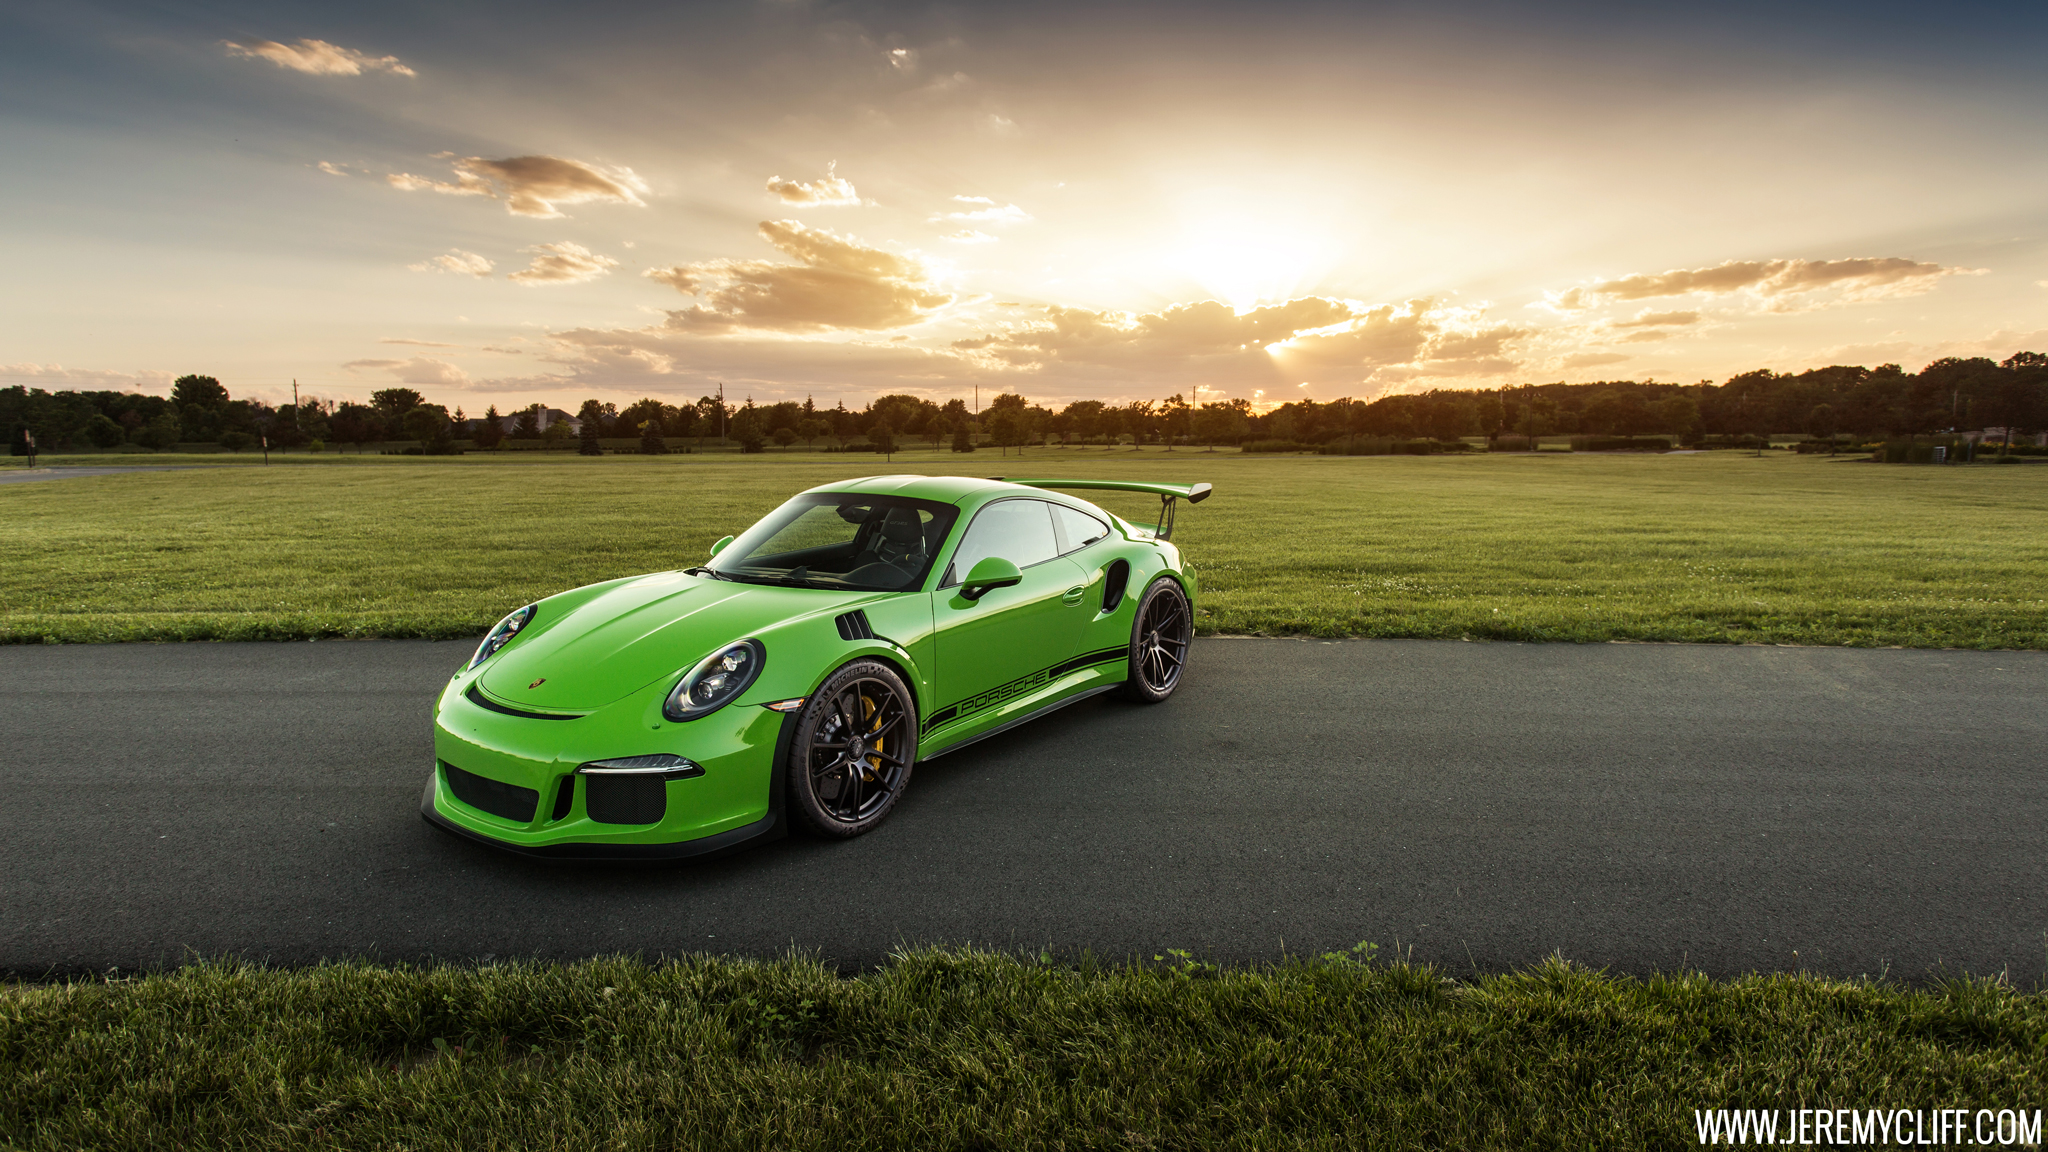 Porsche Hd Wallpapers 1080p: 2048x1152 Porsche 911 GT3 RS 2048x1152 Resolution HD 4k